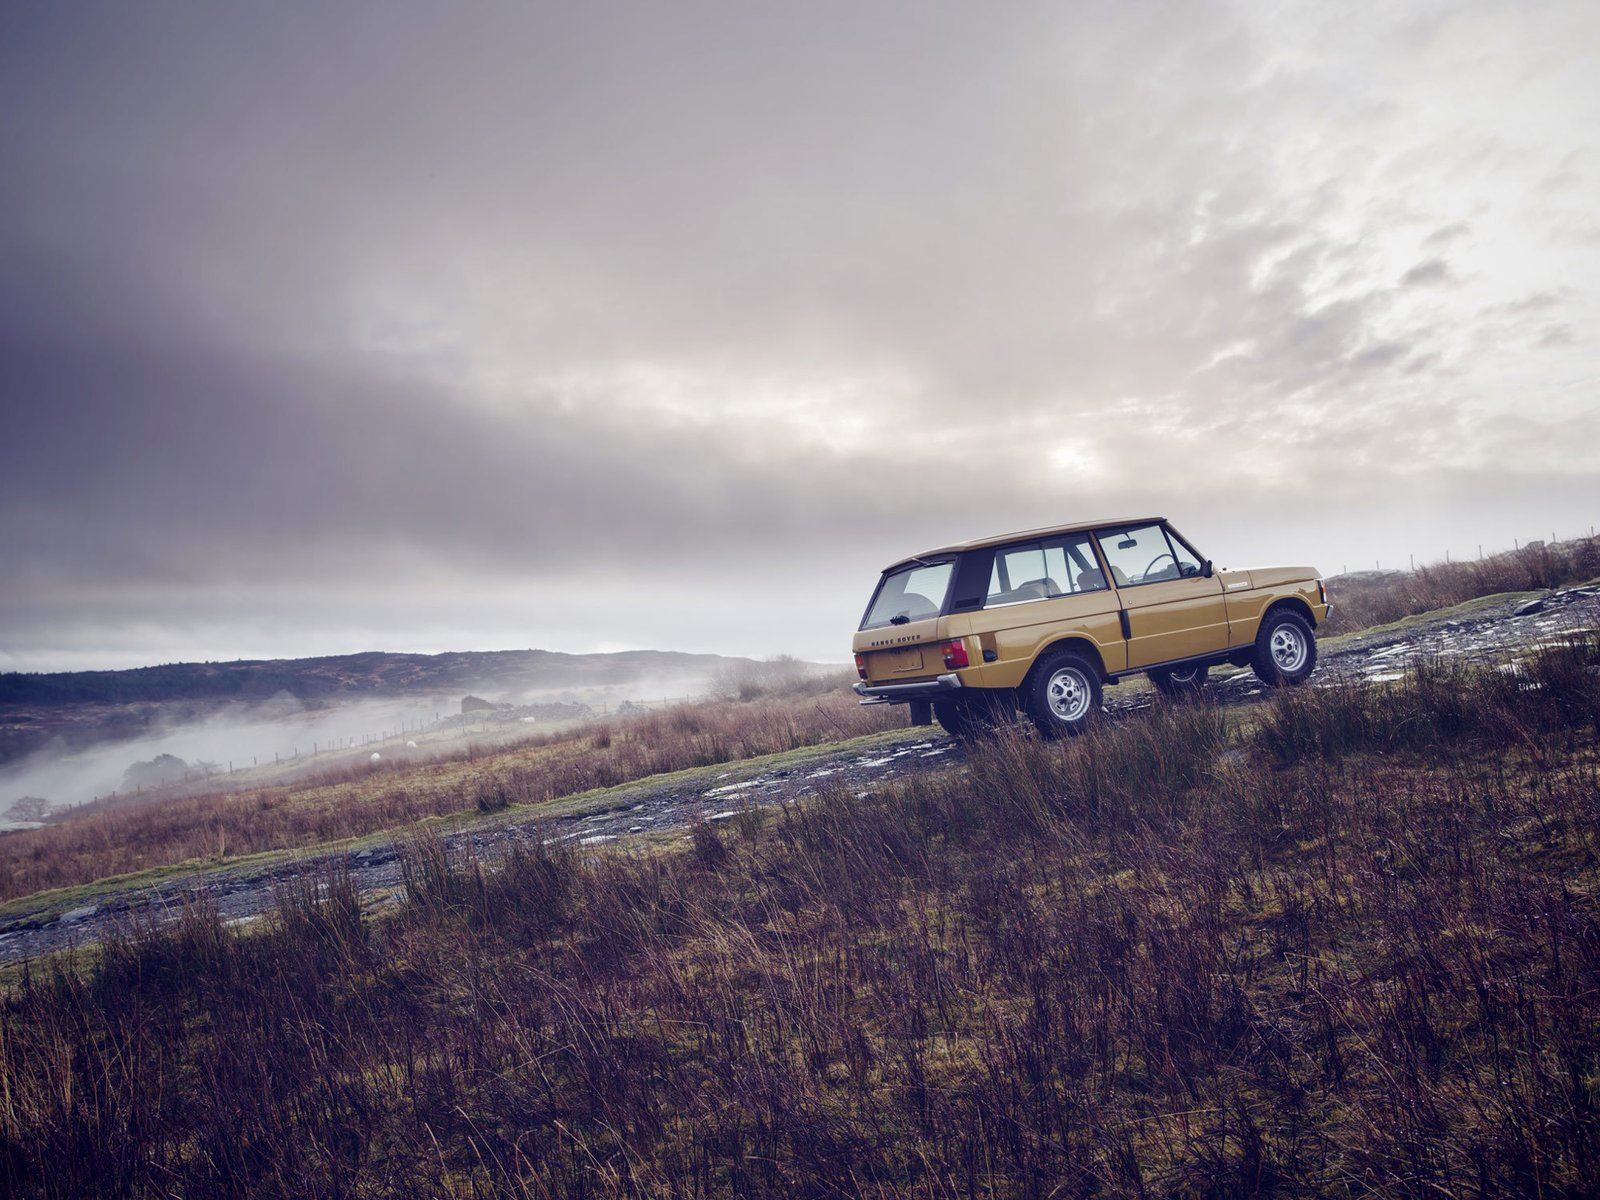 Photo 2 of 7 in 1978 Range Rover Classic Comes To The Reborn Series